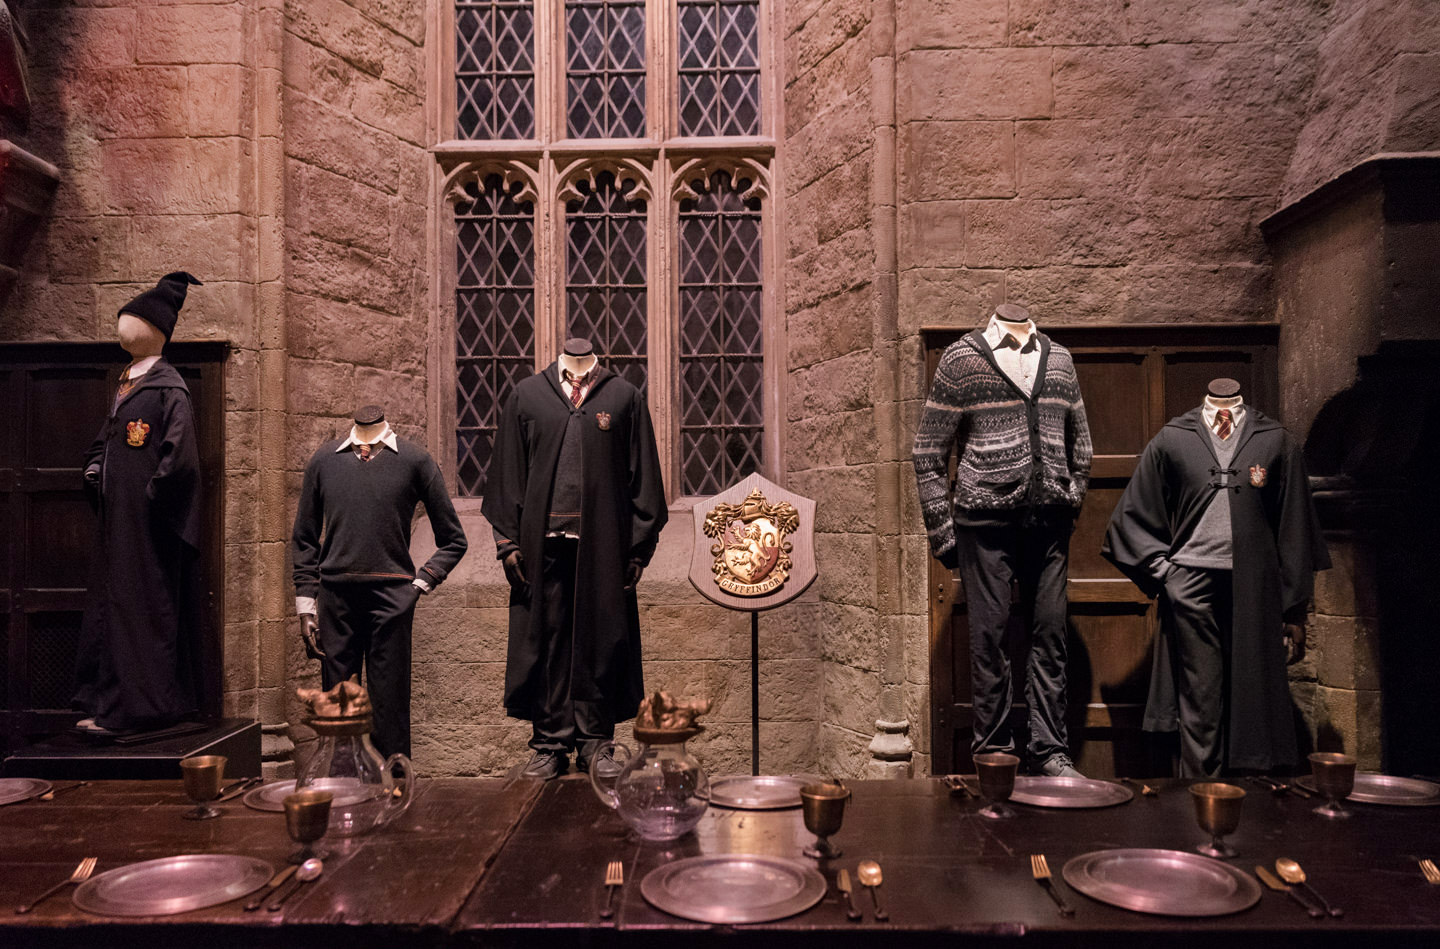 Blog-Mode-And-The-City-Lifestyle-Visite-Studios-Harry-Potter-Londres-2